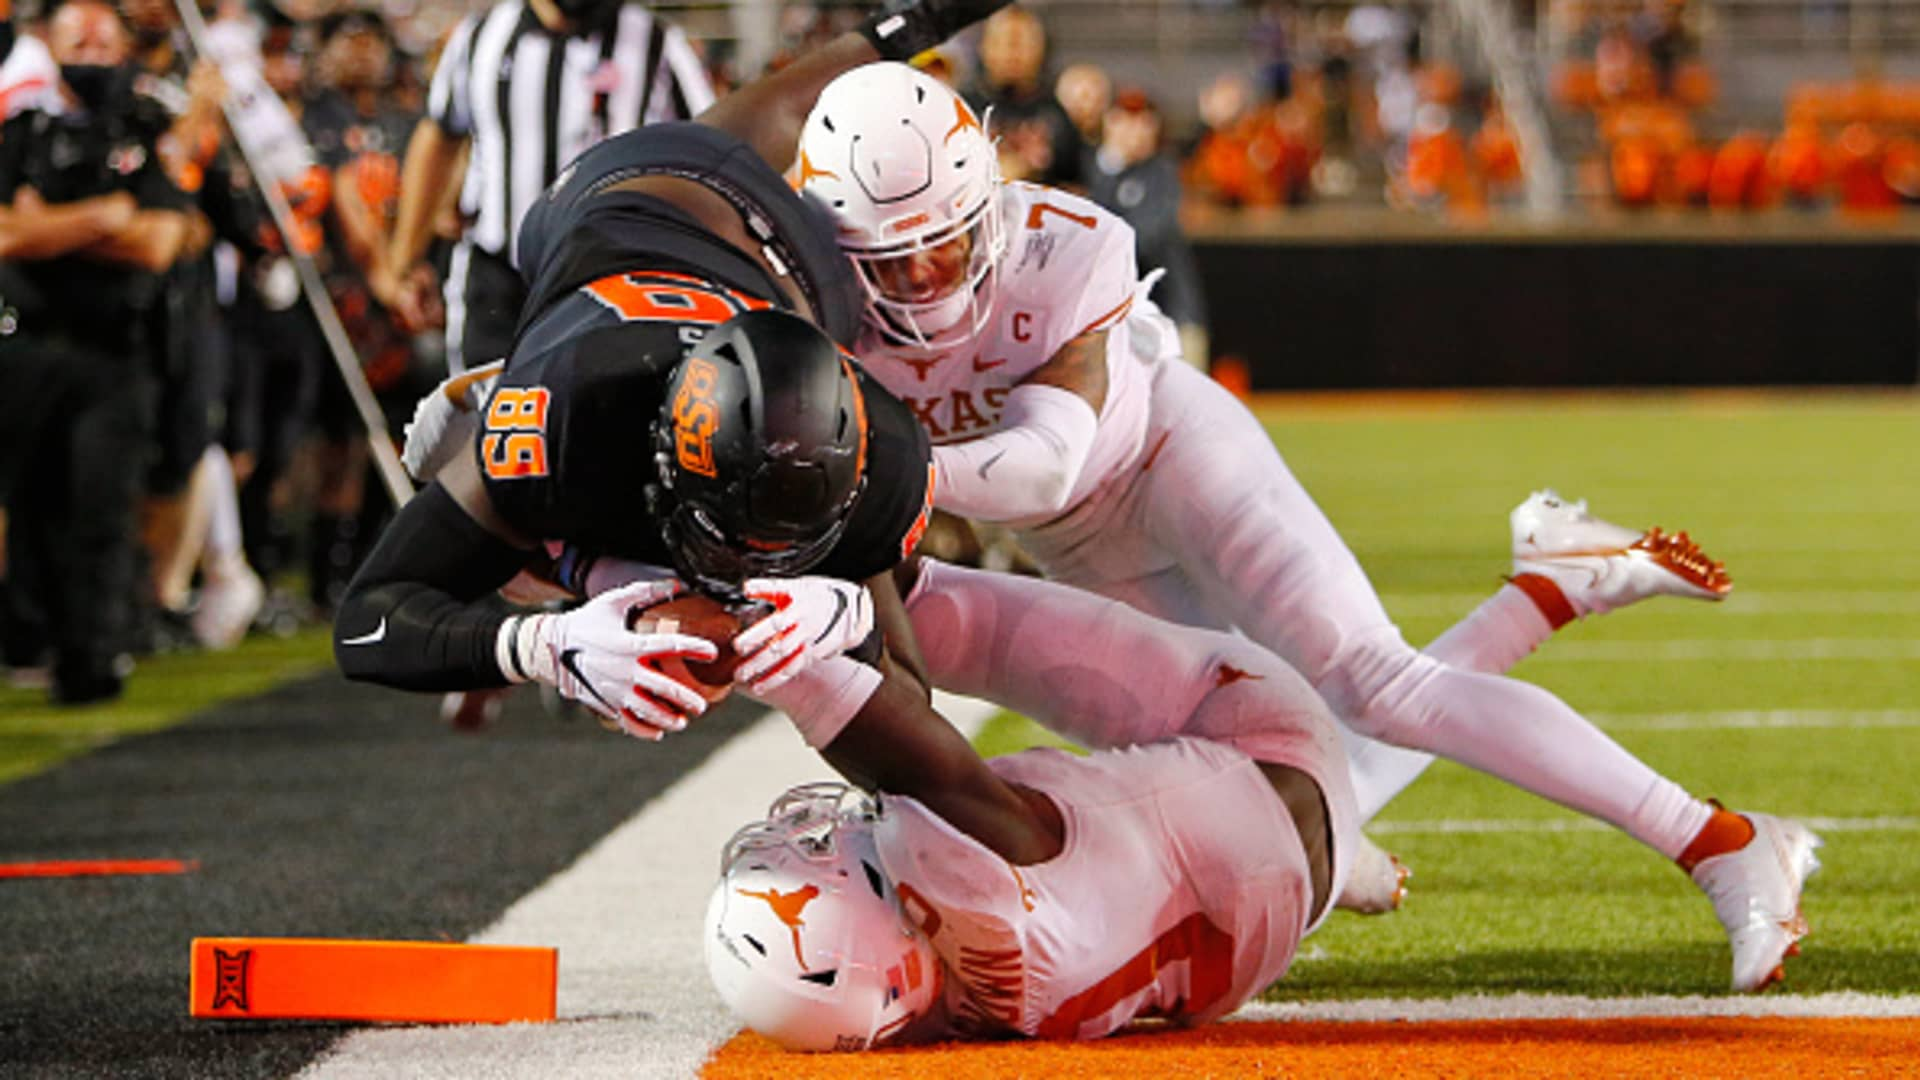 Tight end Jelani Woods #89 of the Oklahoma State Cowboys dives into the end zone for a nullified overtime touchdown against defensive back Caden Sterns #7 and linebacker DeMarvion Overshown #0 of the Texas Longhorns at Boone Pickens Stadium on October 31, 2020 in Stillwater, Oklahoma.